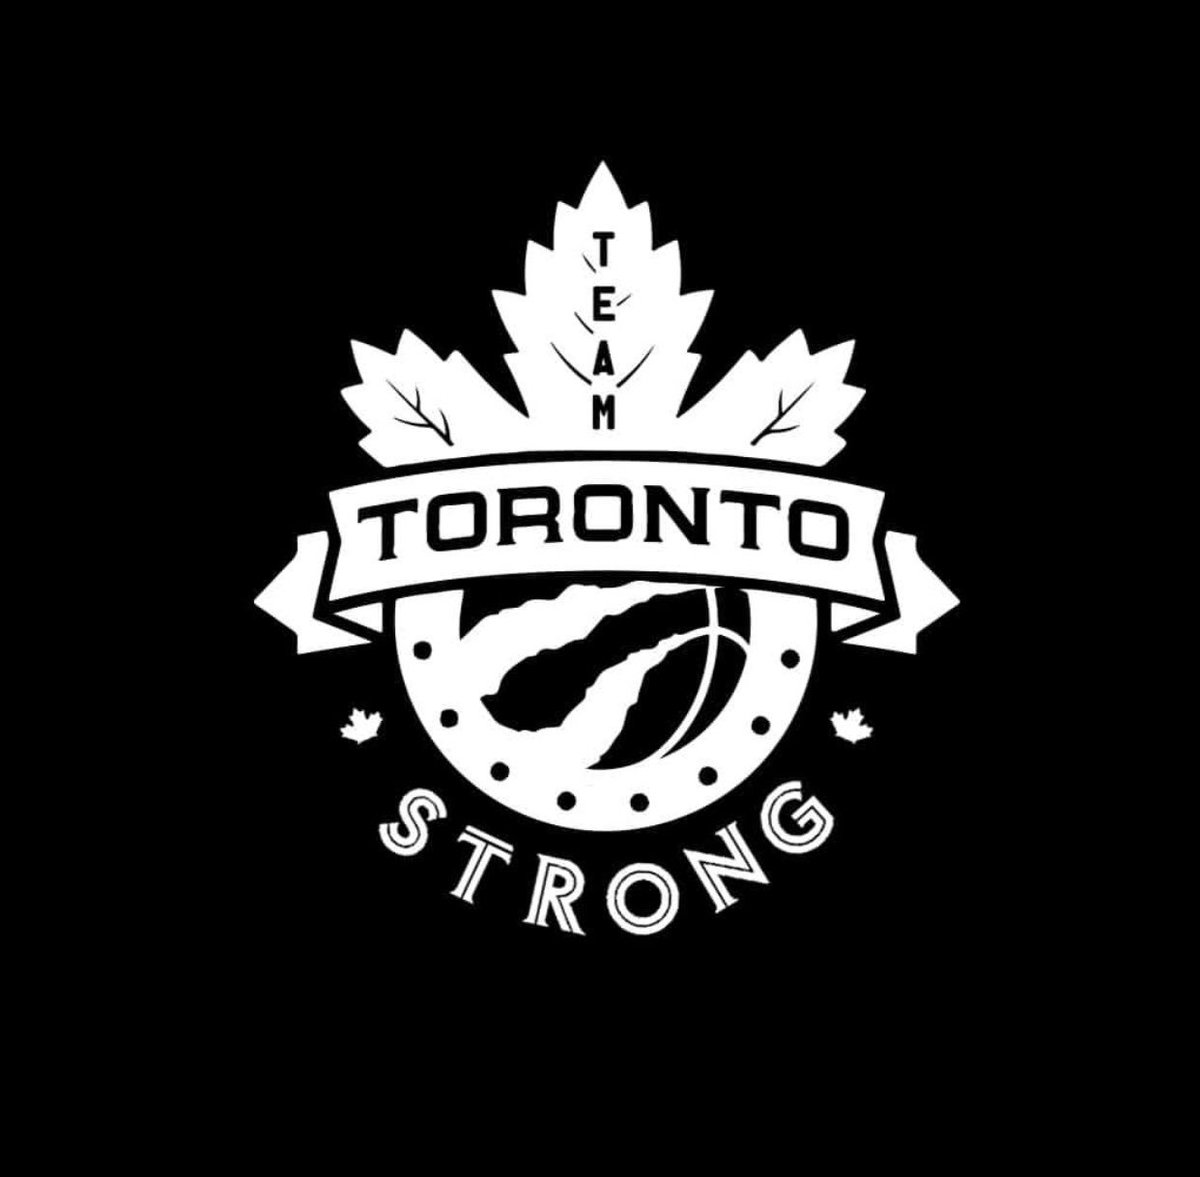 norm kelly on twitter sports are one of the few things that can Toronto Ontario tonight is what we need as a city torontostrong raptors at 7pm bluejays at 7 07pm mapleleafs at 7 30pm torontofc at 9 30pmpic twitter